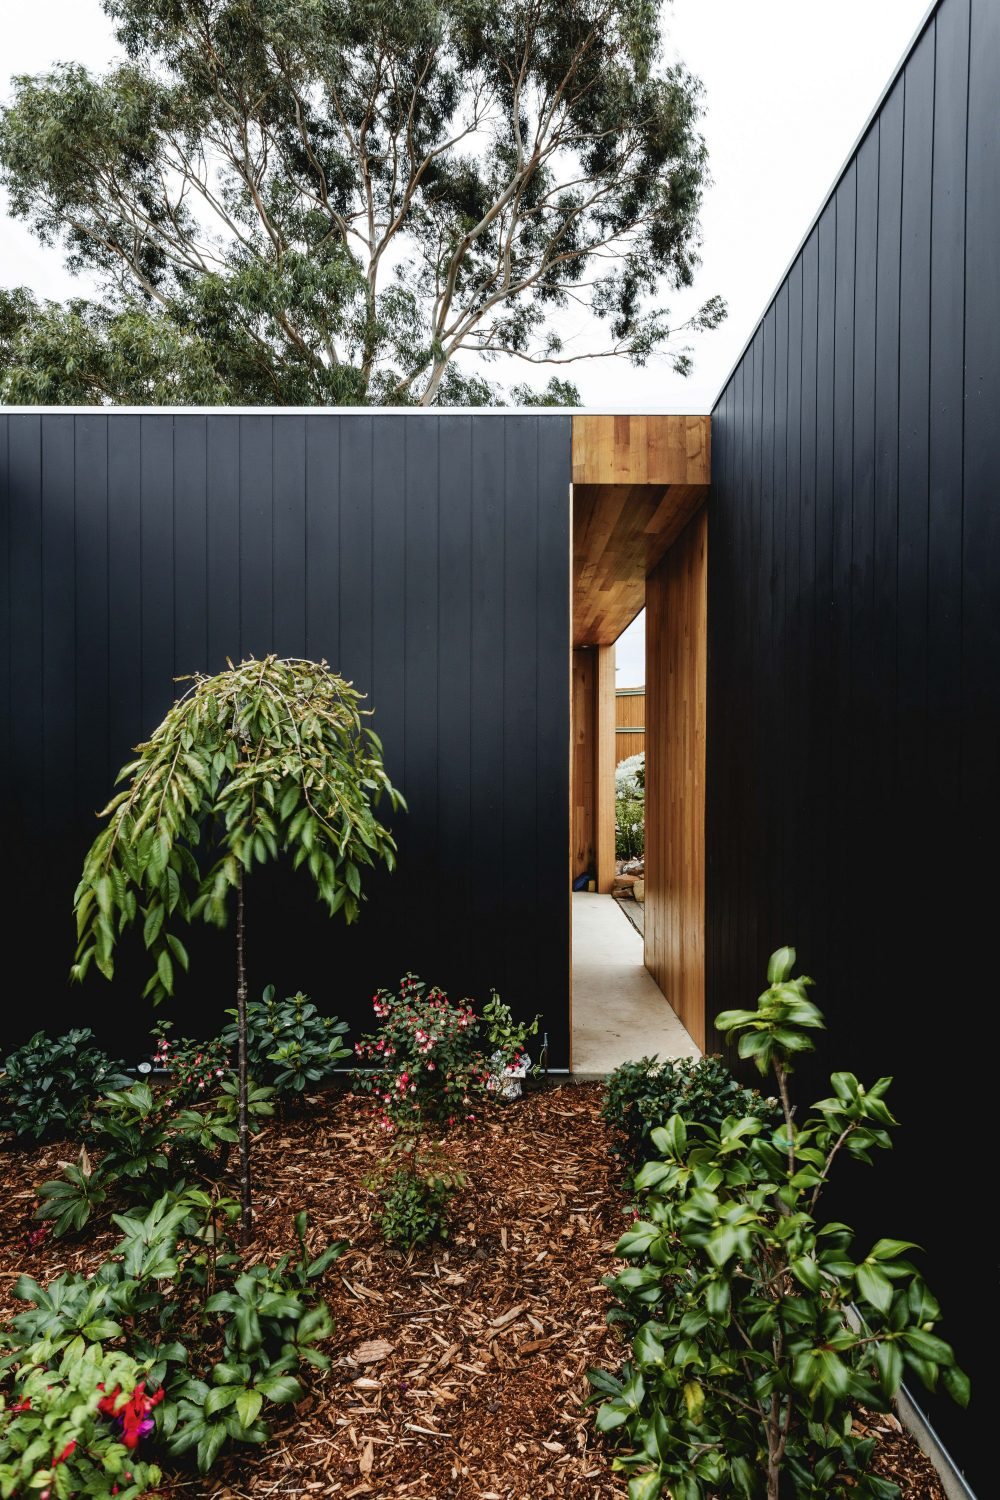 Five Yards House in Tasmania by Archier